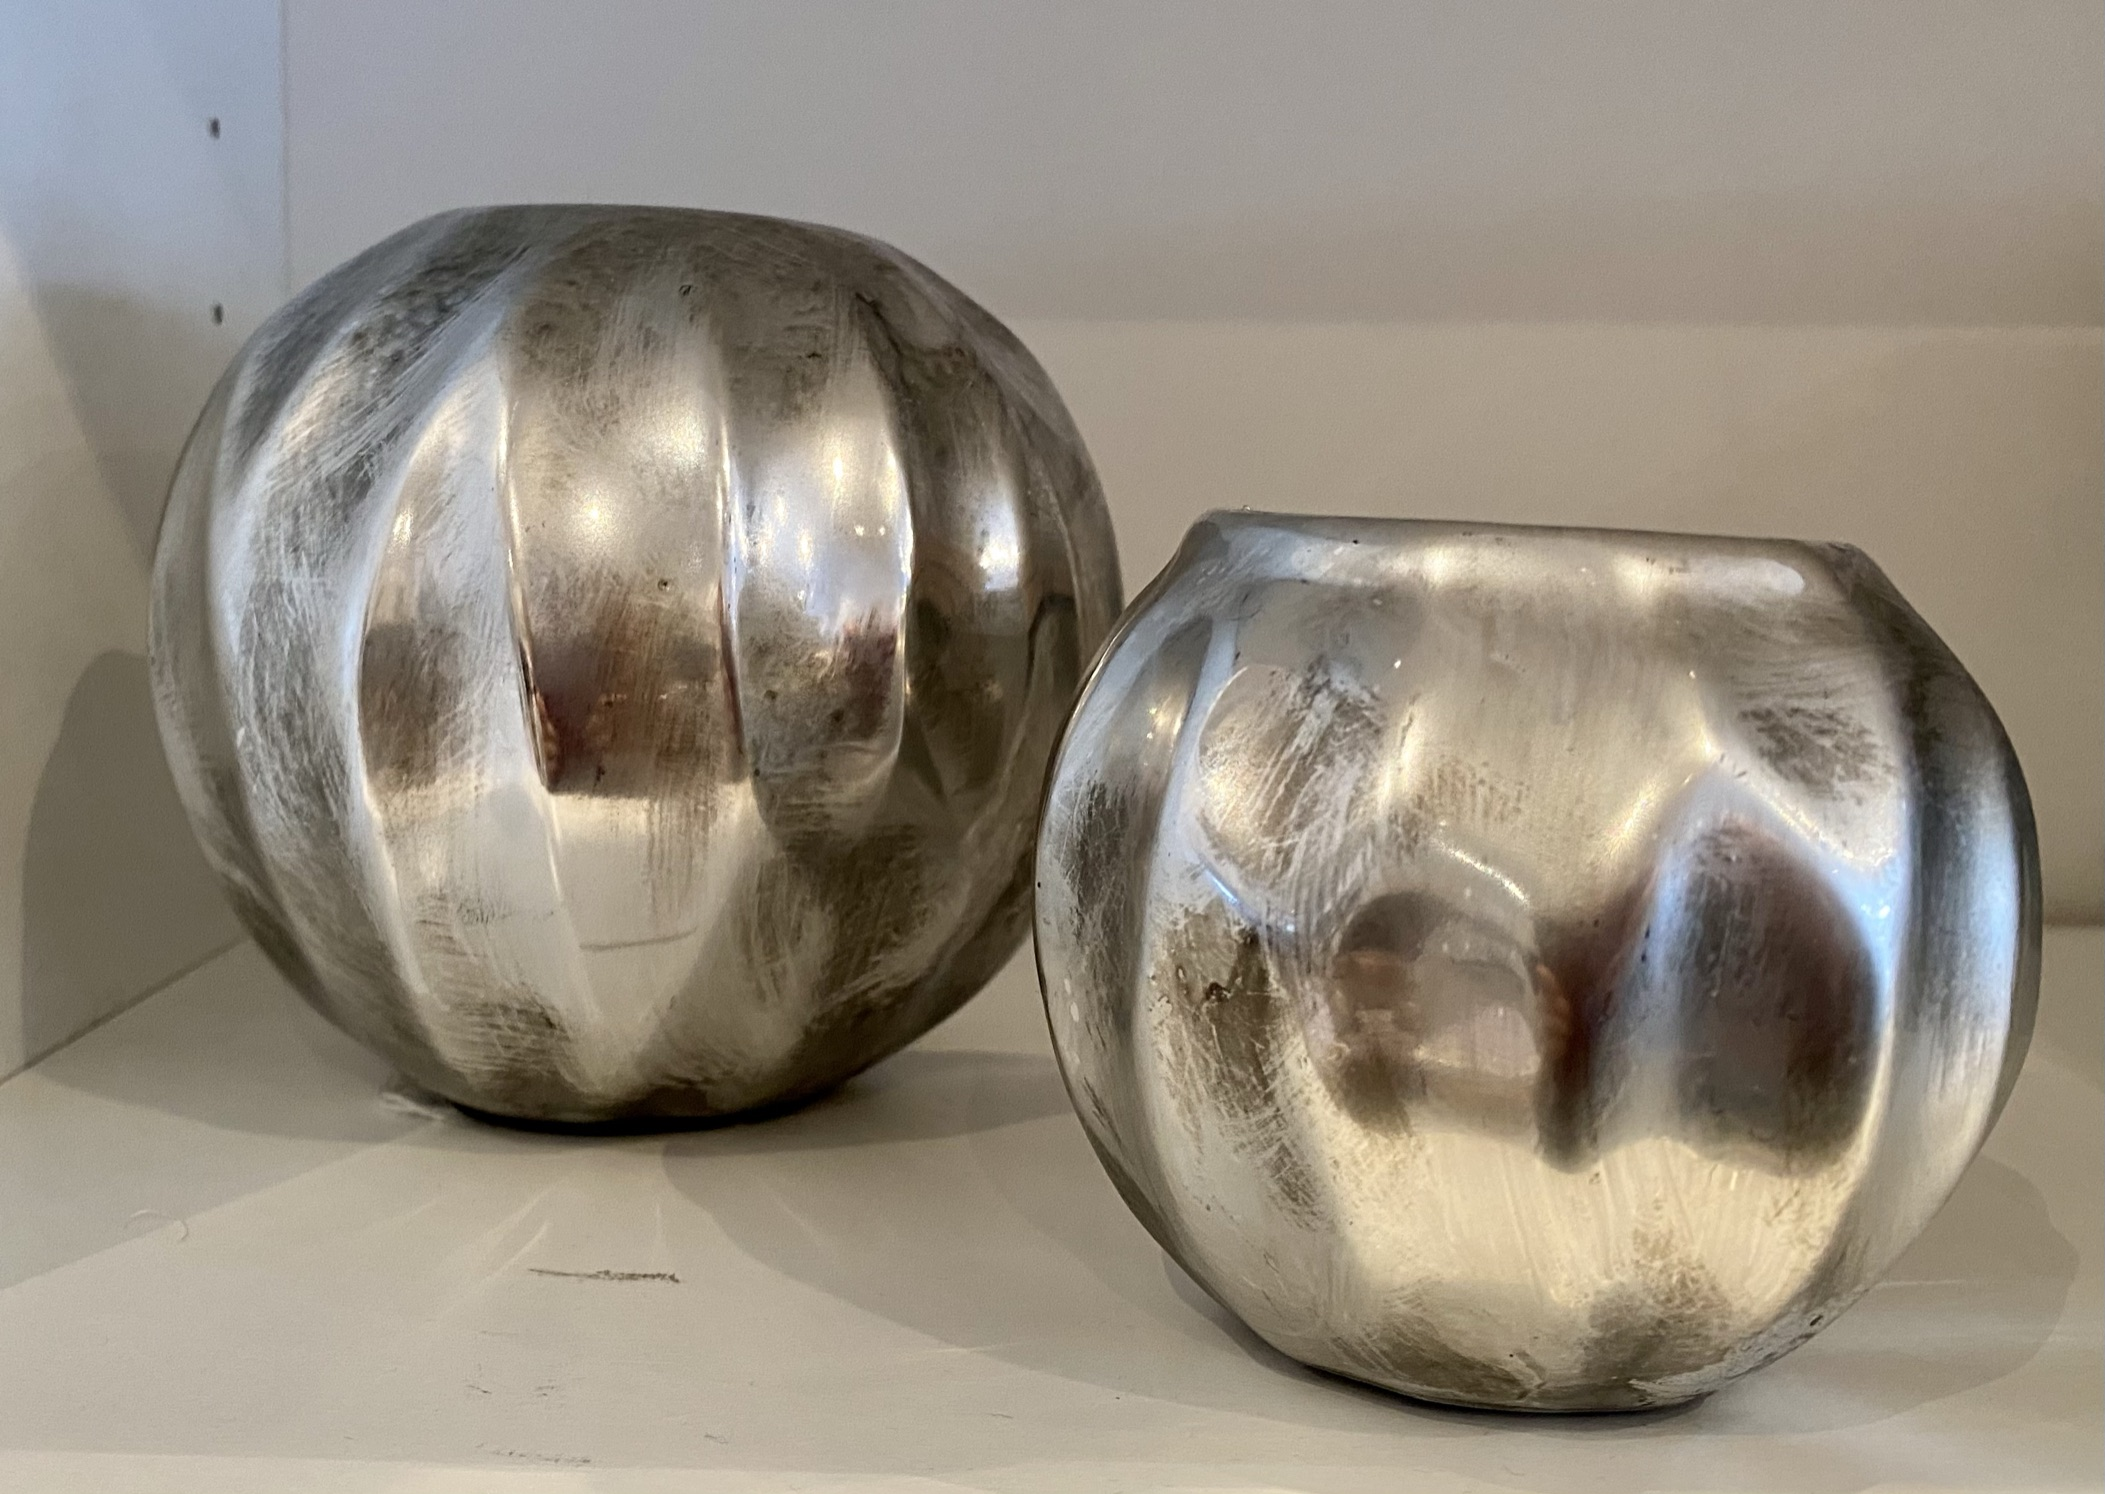 Large spherical metallic ceramic tealight holder